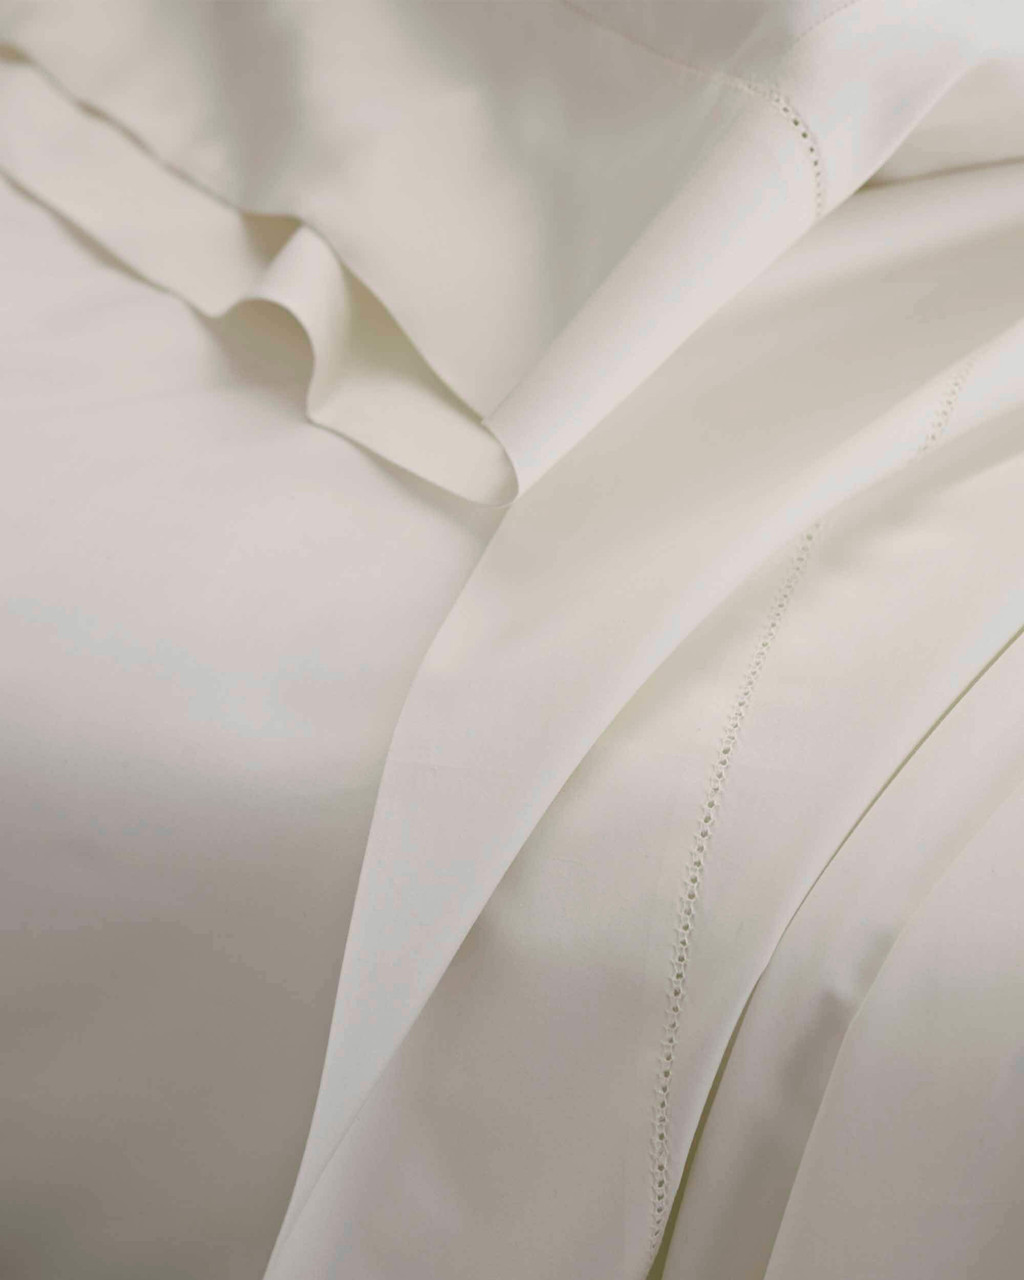 scandia down adriana fitted sheets, scandia home adriana fitted sheets, scandia down linens, scandia home linens